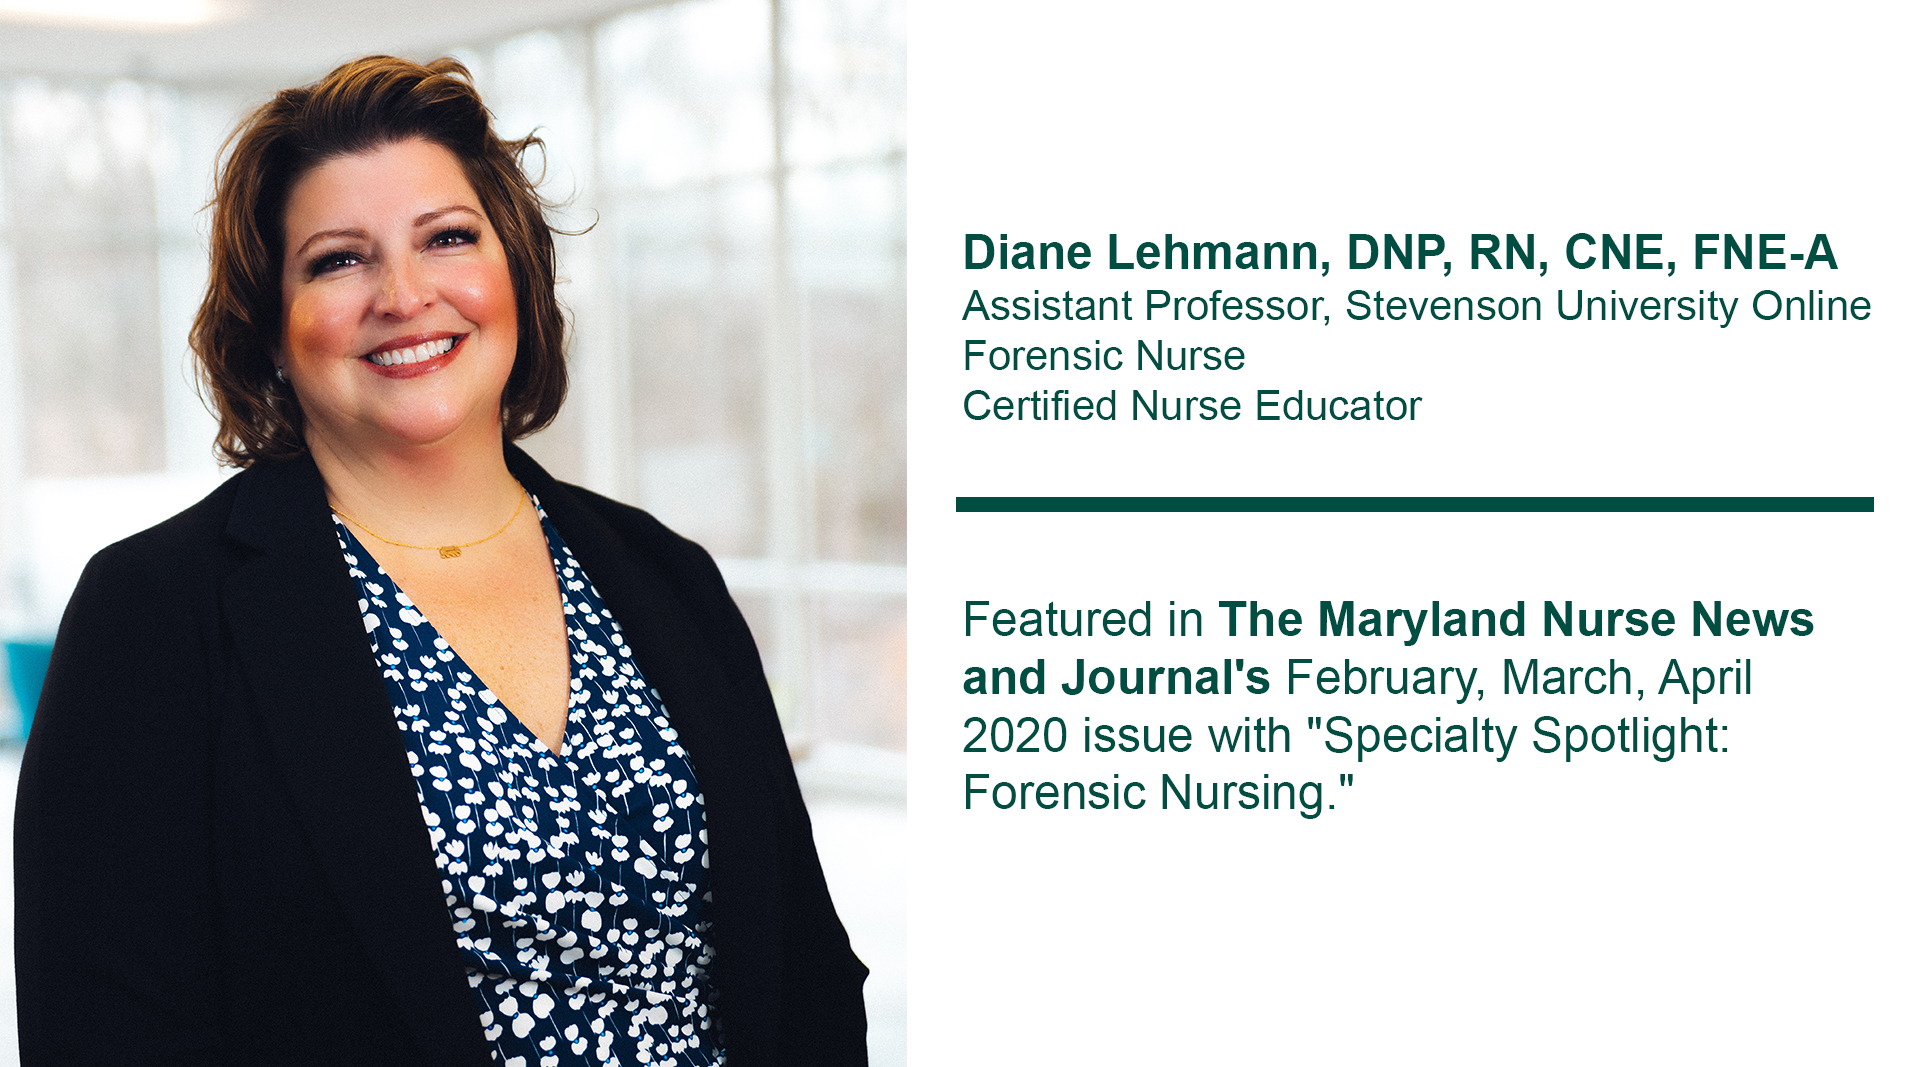 News Suo Faculty Featured In The Md Nurse News And Journal Stevenson University